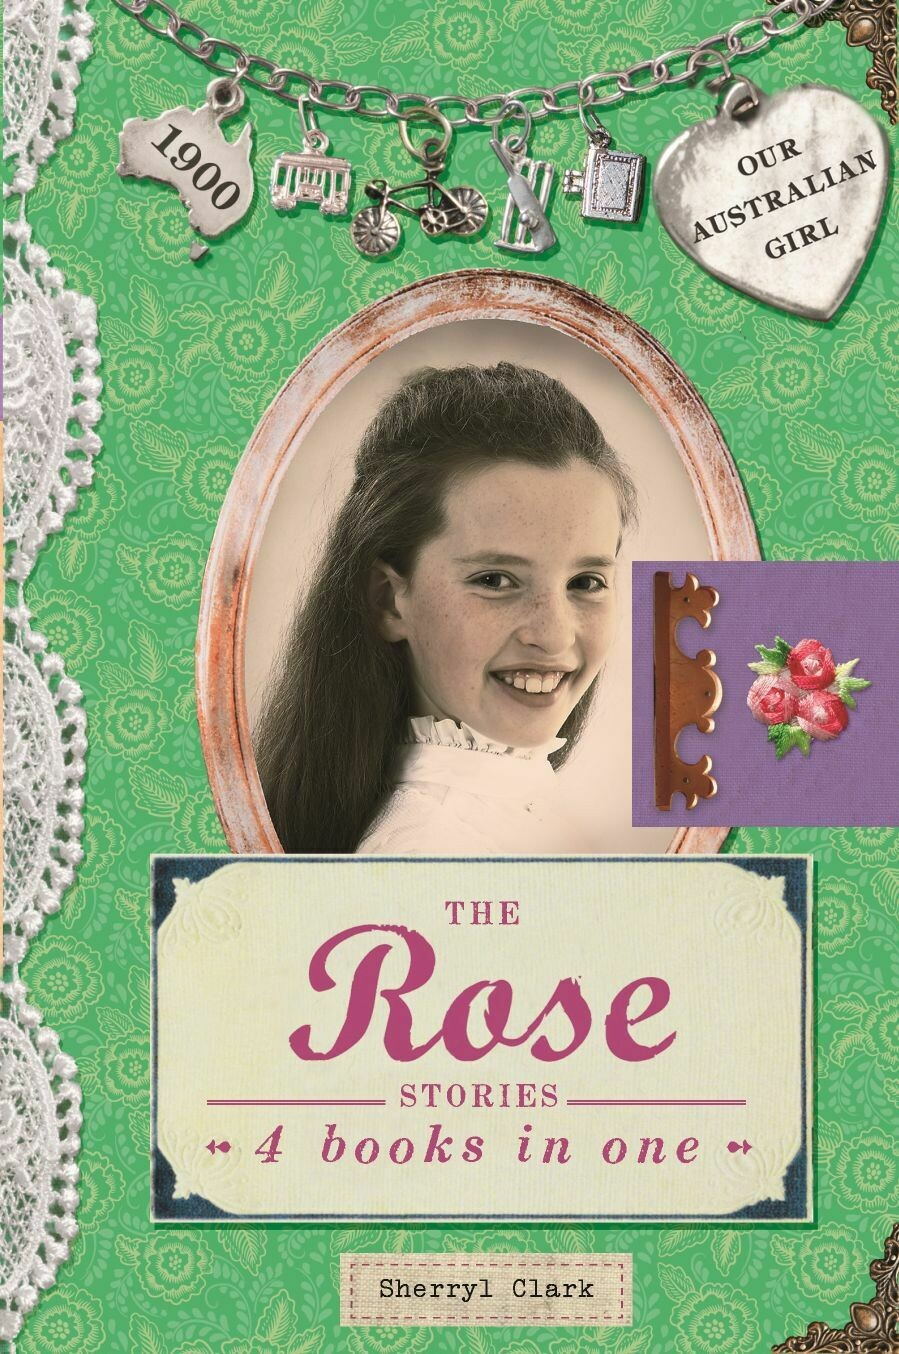 The Rose Stories by Sherryl Clark